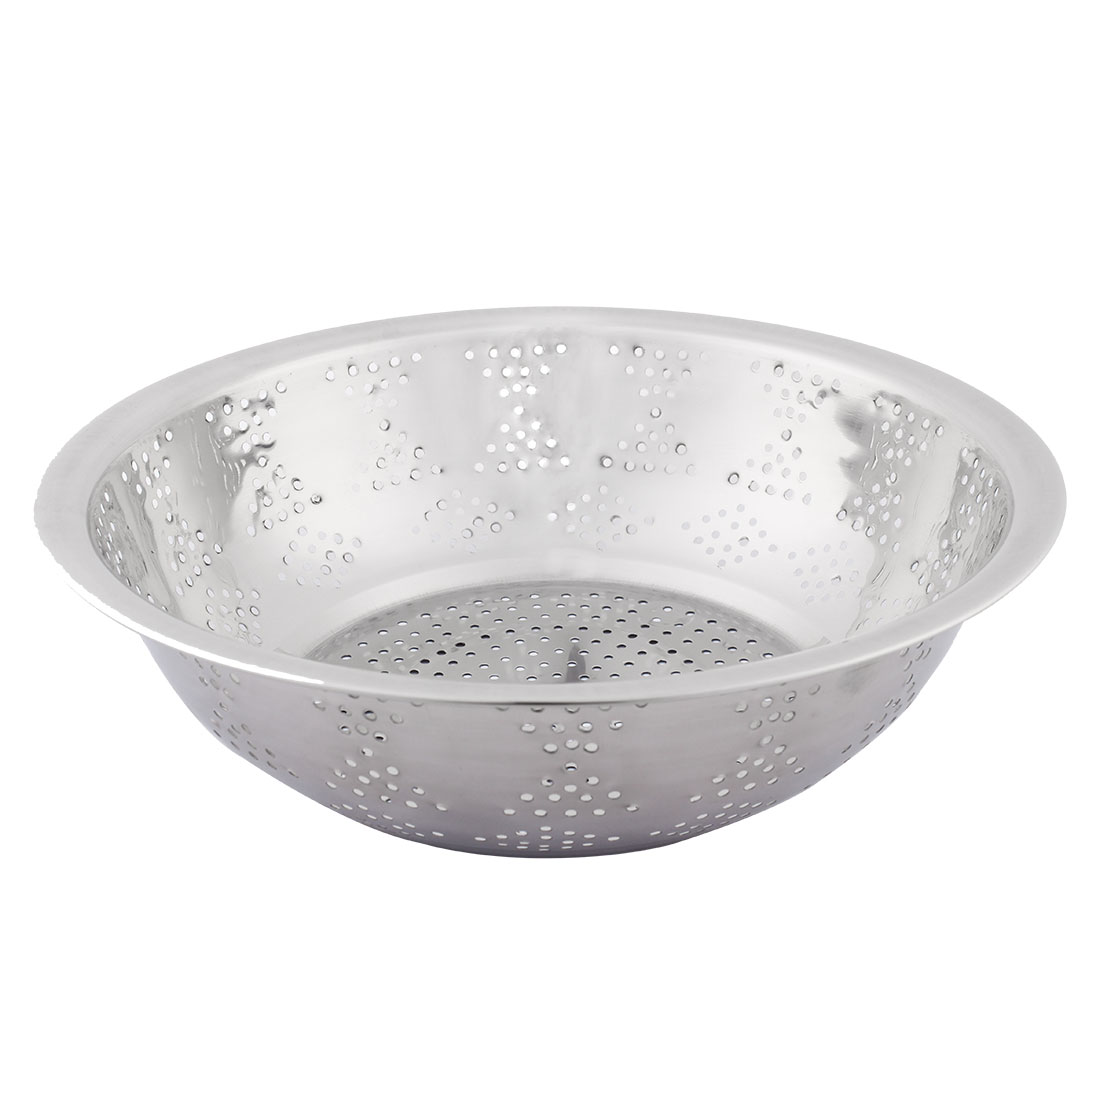 Click here to buy Hosehold Metal Vegetable Fruit Rice Washing Sieve Strainer Colander 17cm Dia.